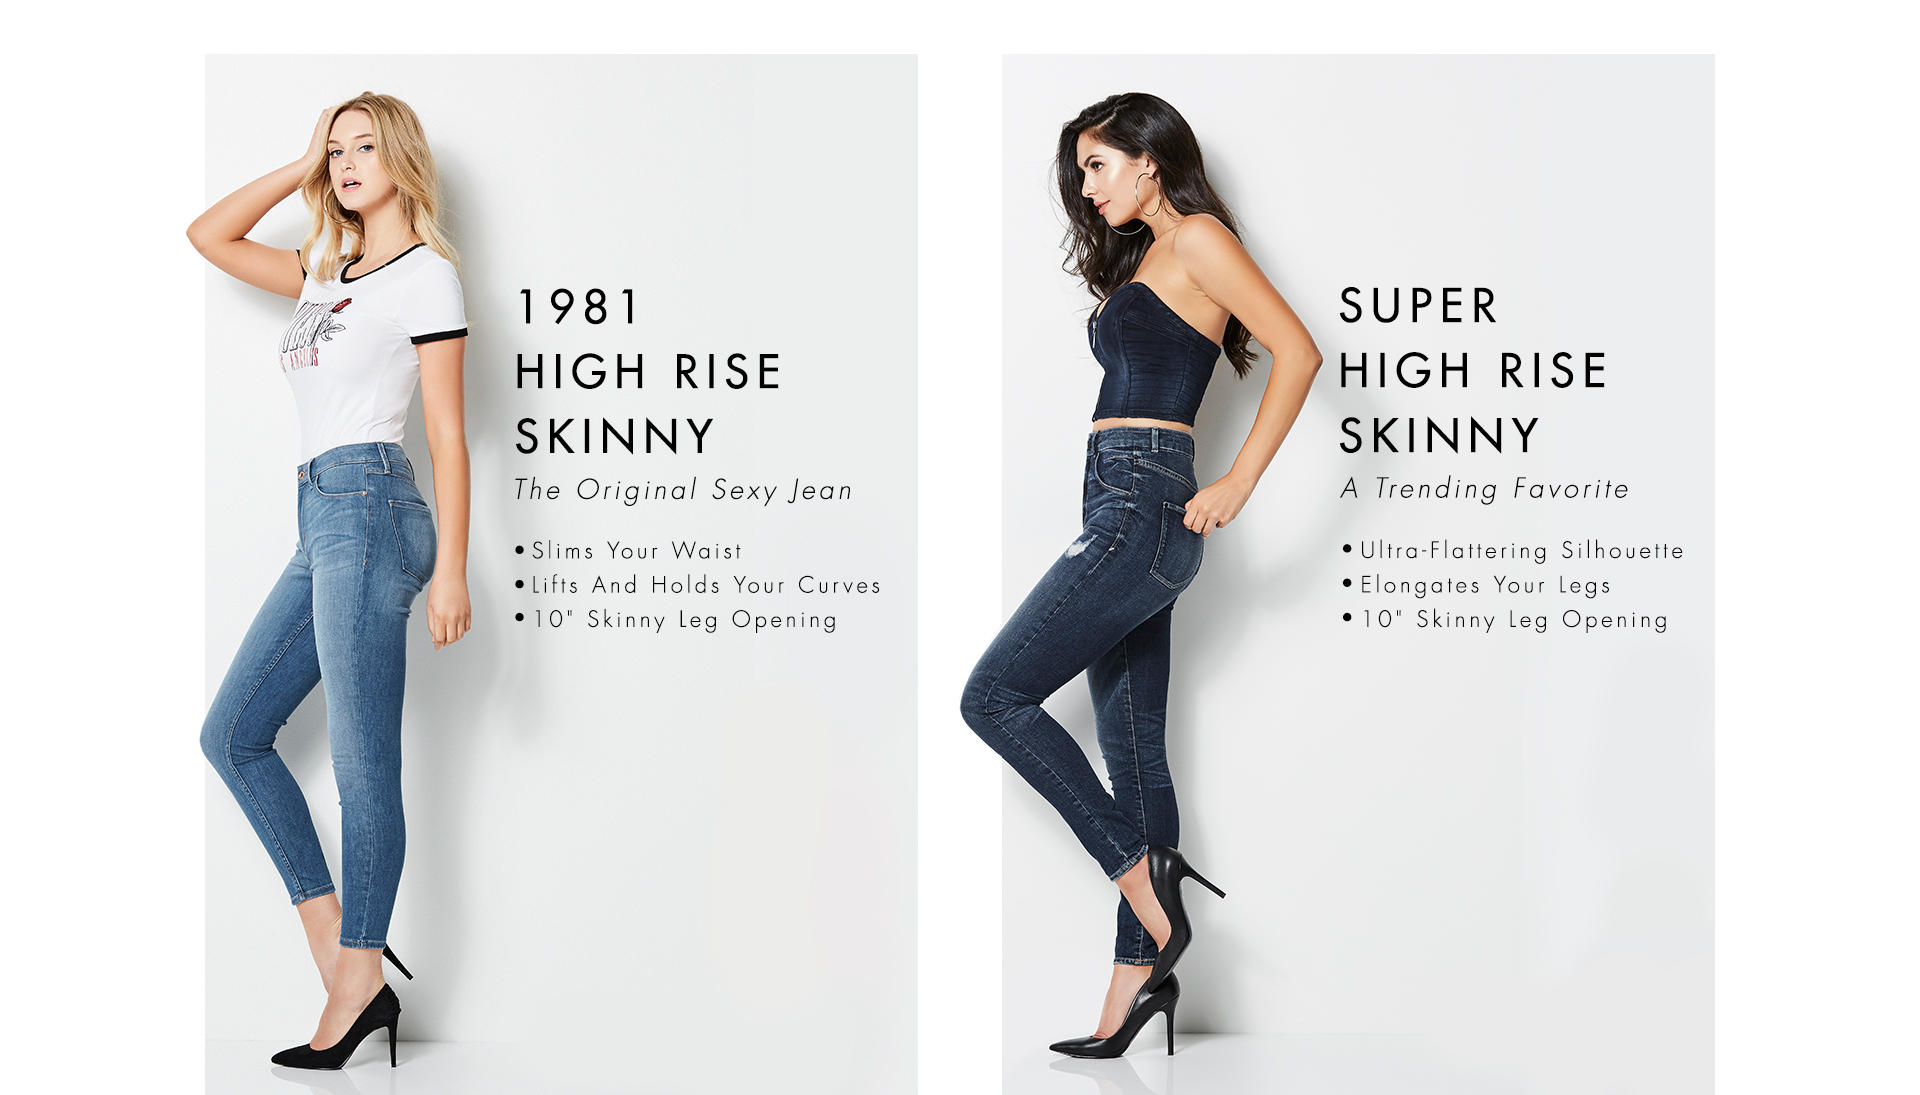 1981 High Rise Skinny and Super Hight Rise Skinny